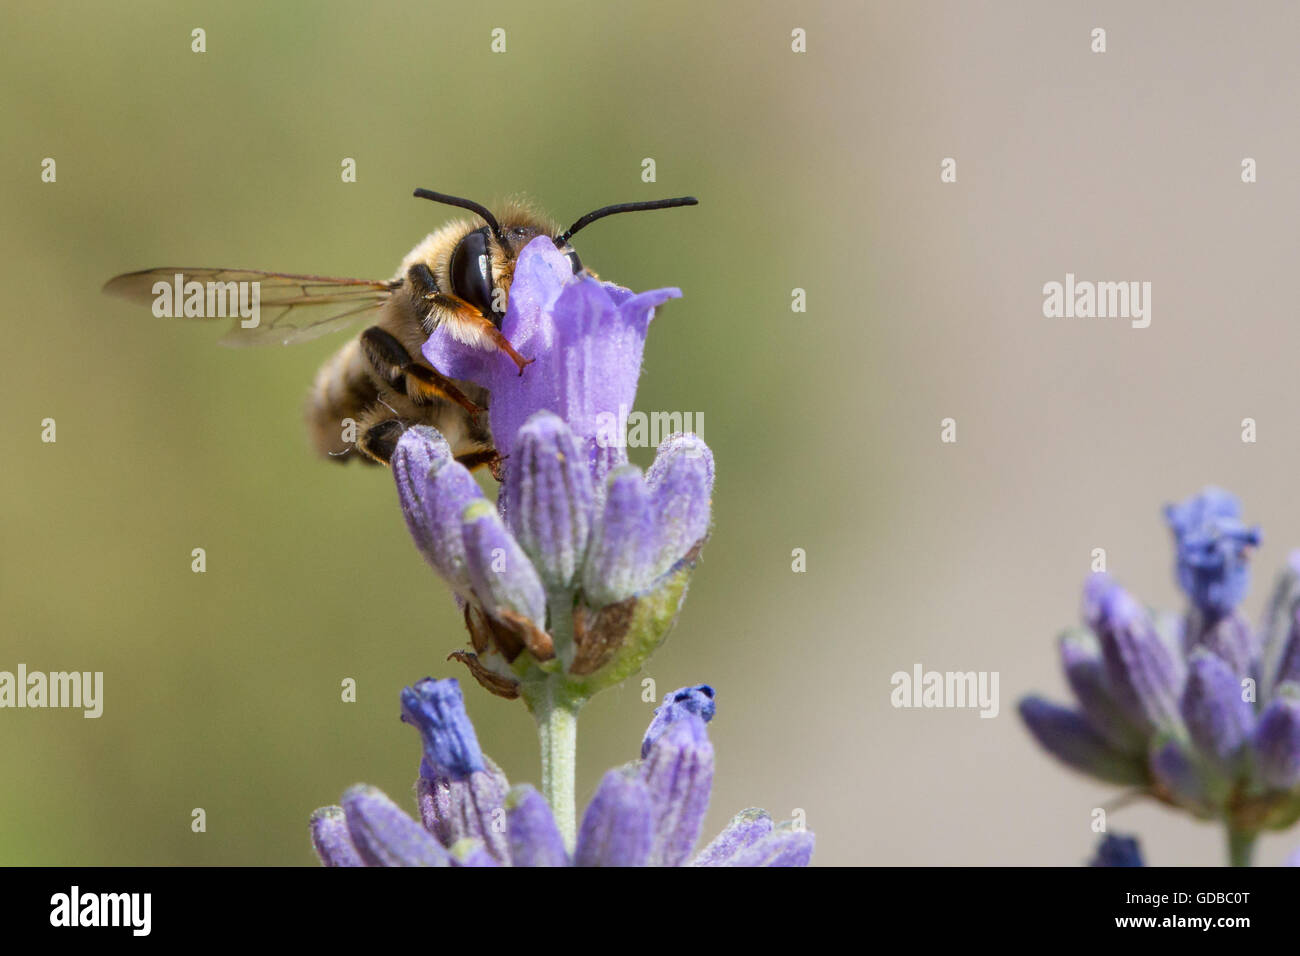 Closeup of a bee pollinating lavender flowers. Stock Photo